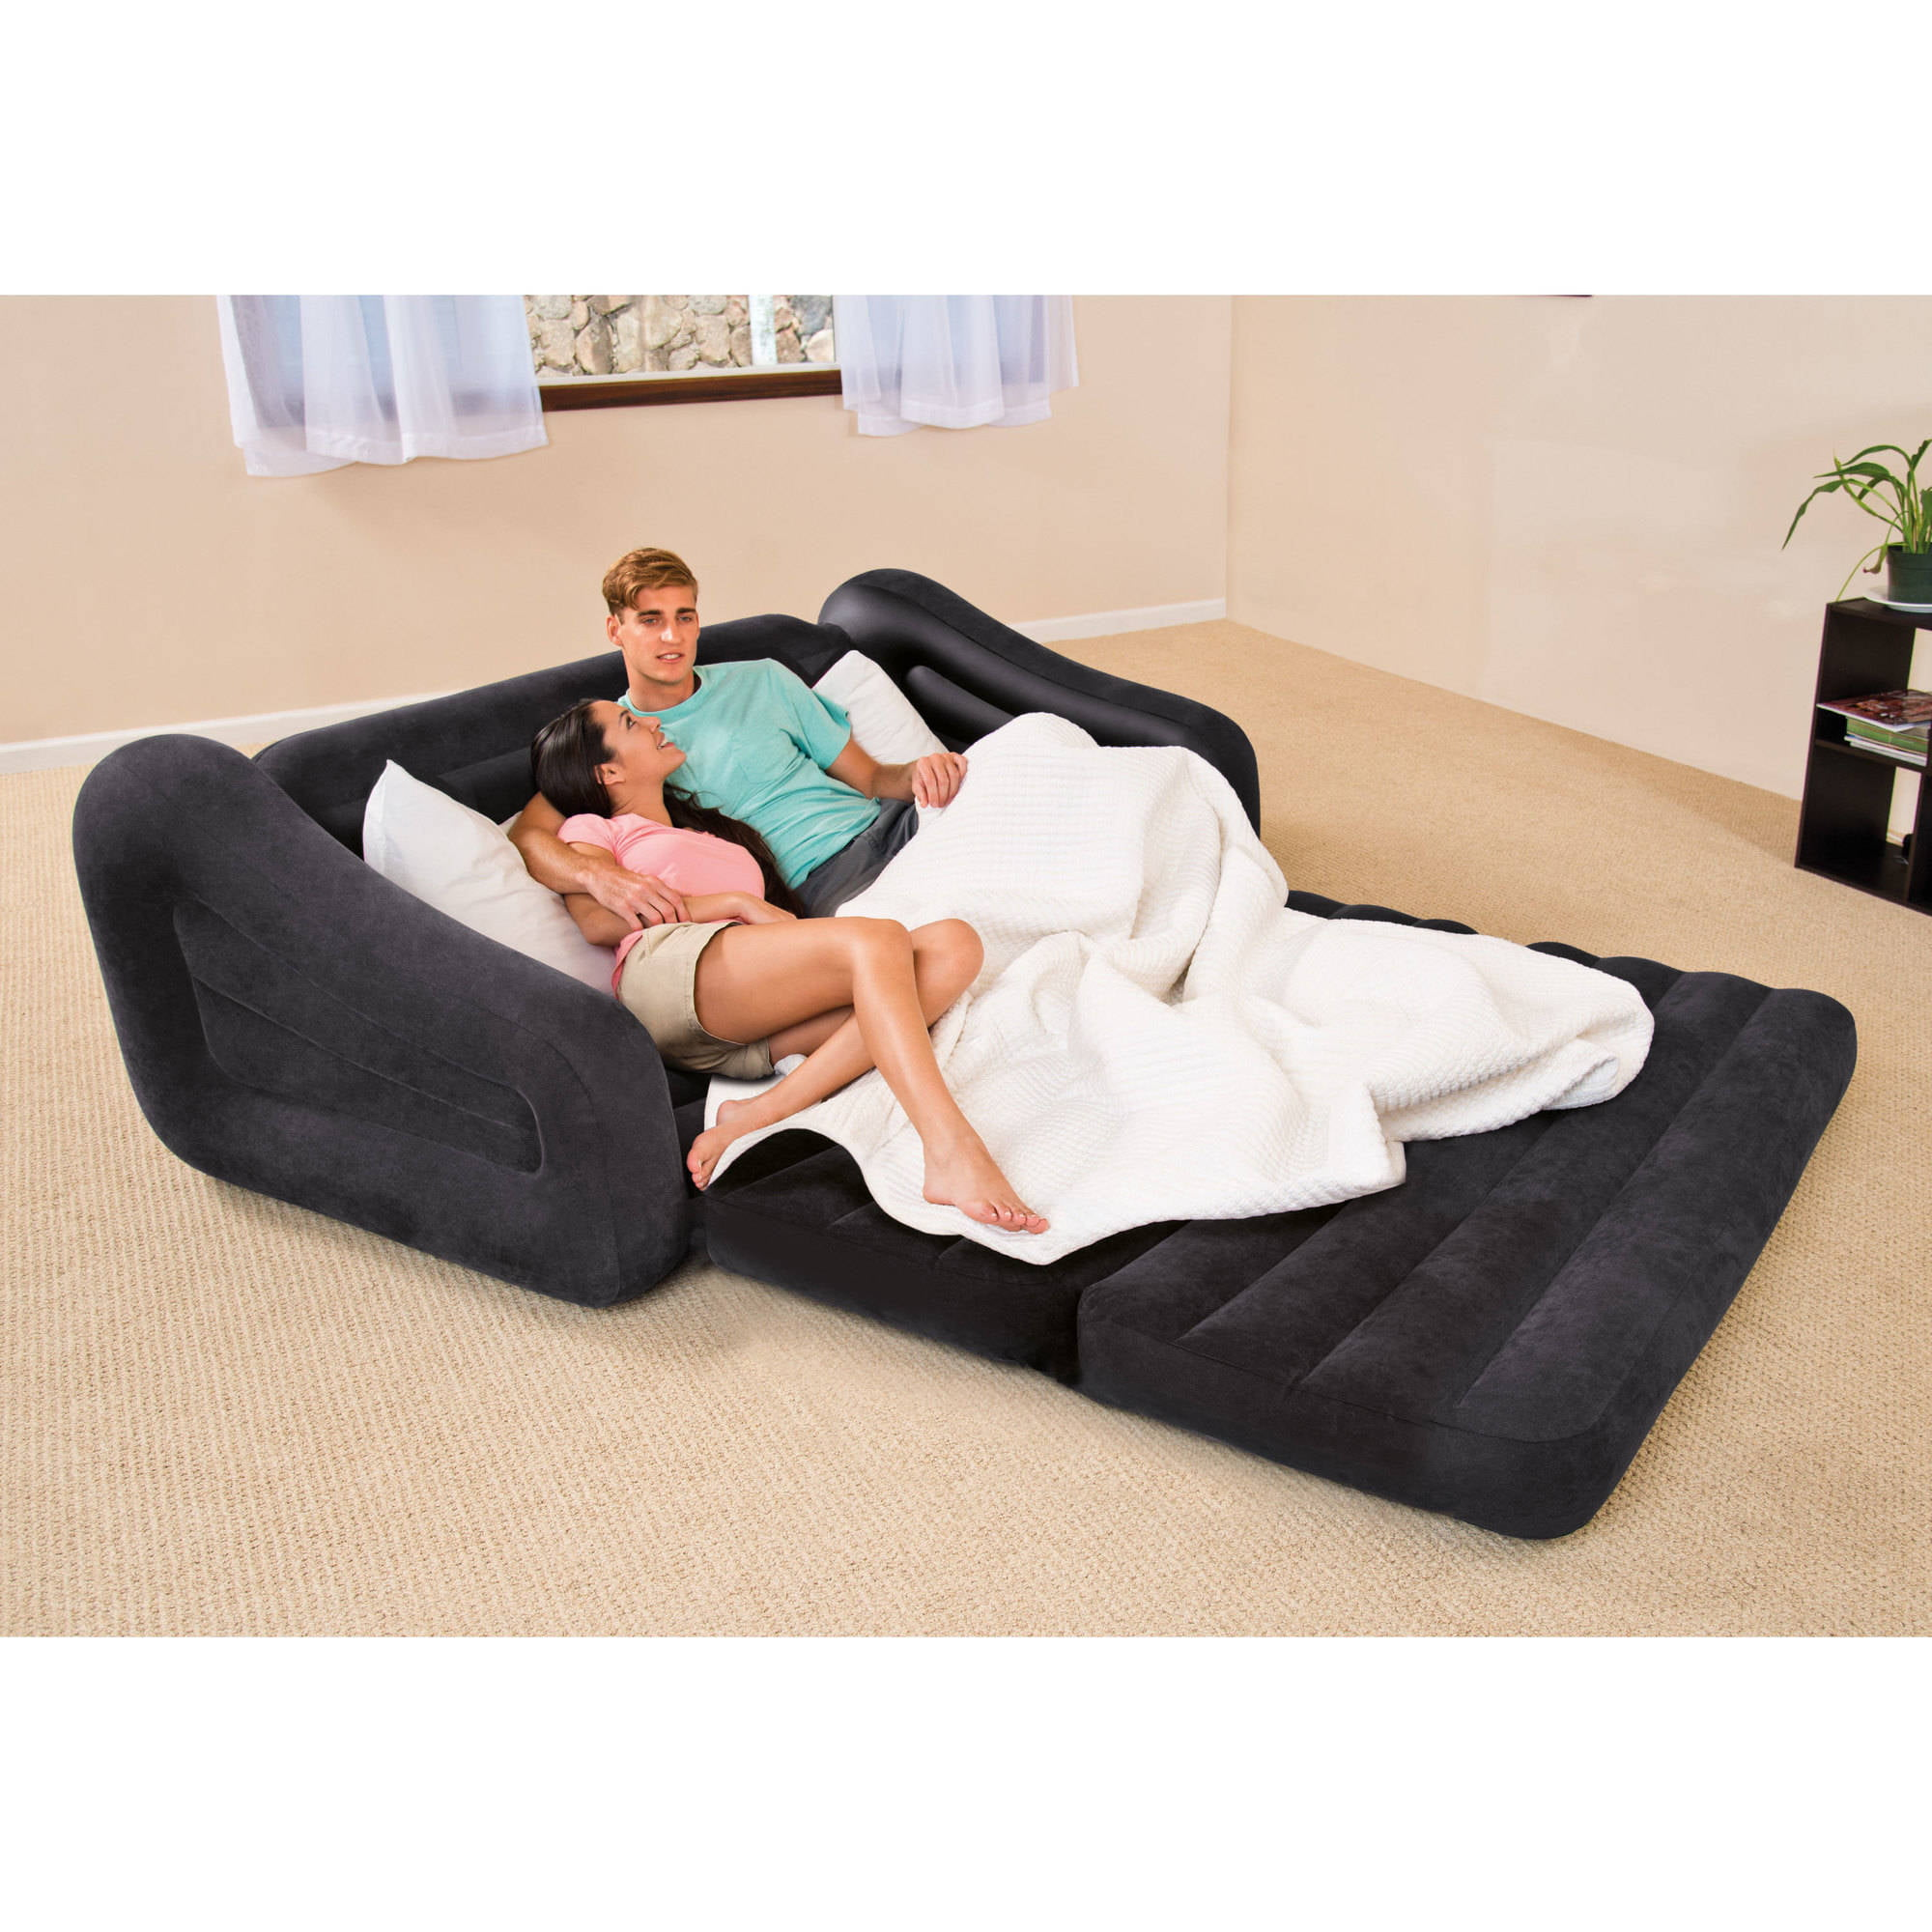 Intex Queen Inflatable Pull Out Sofa Bed Walmartcom